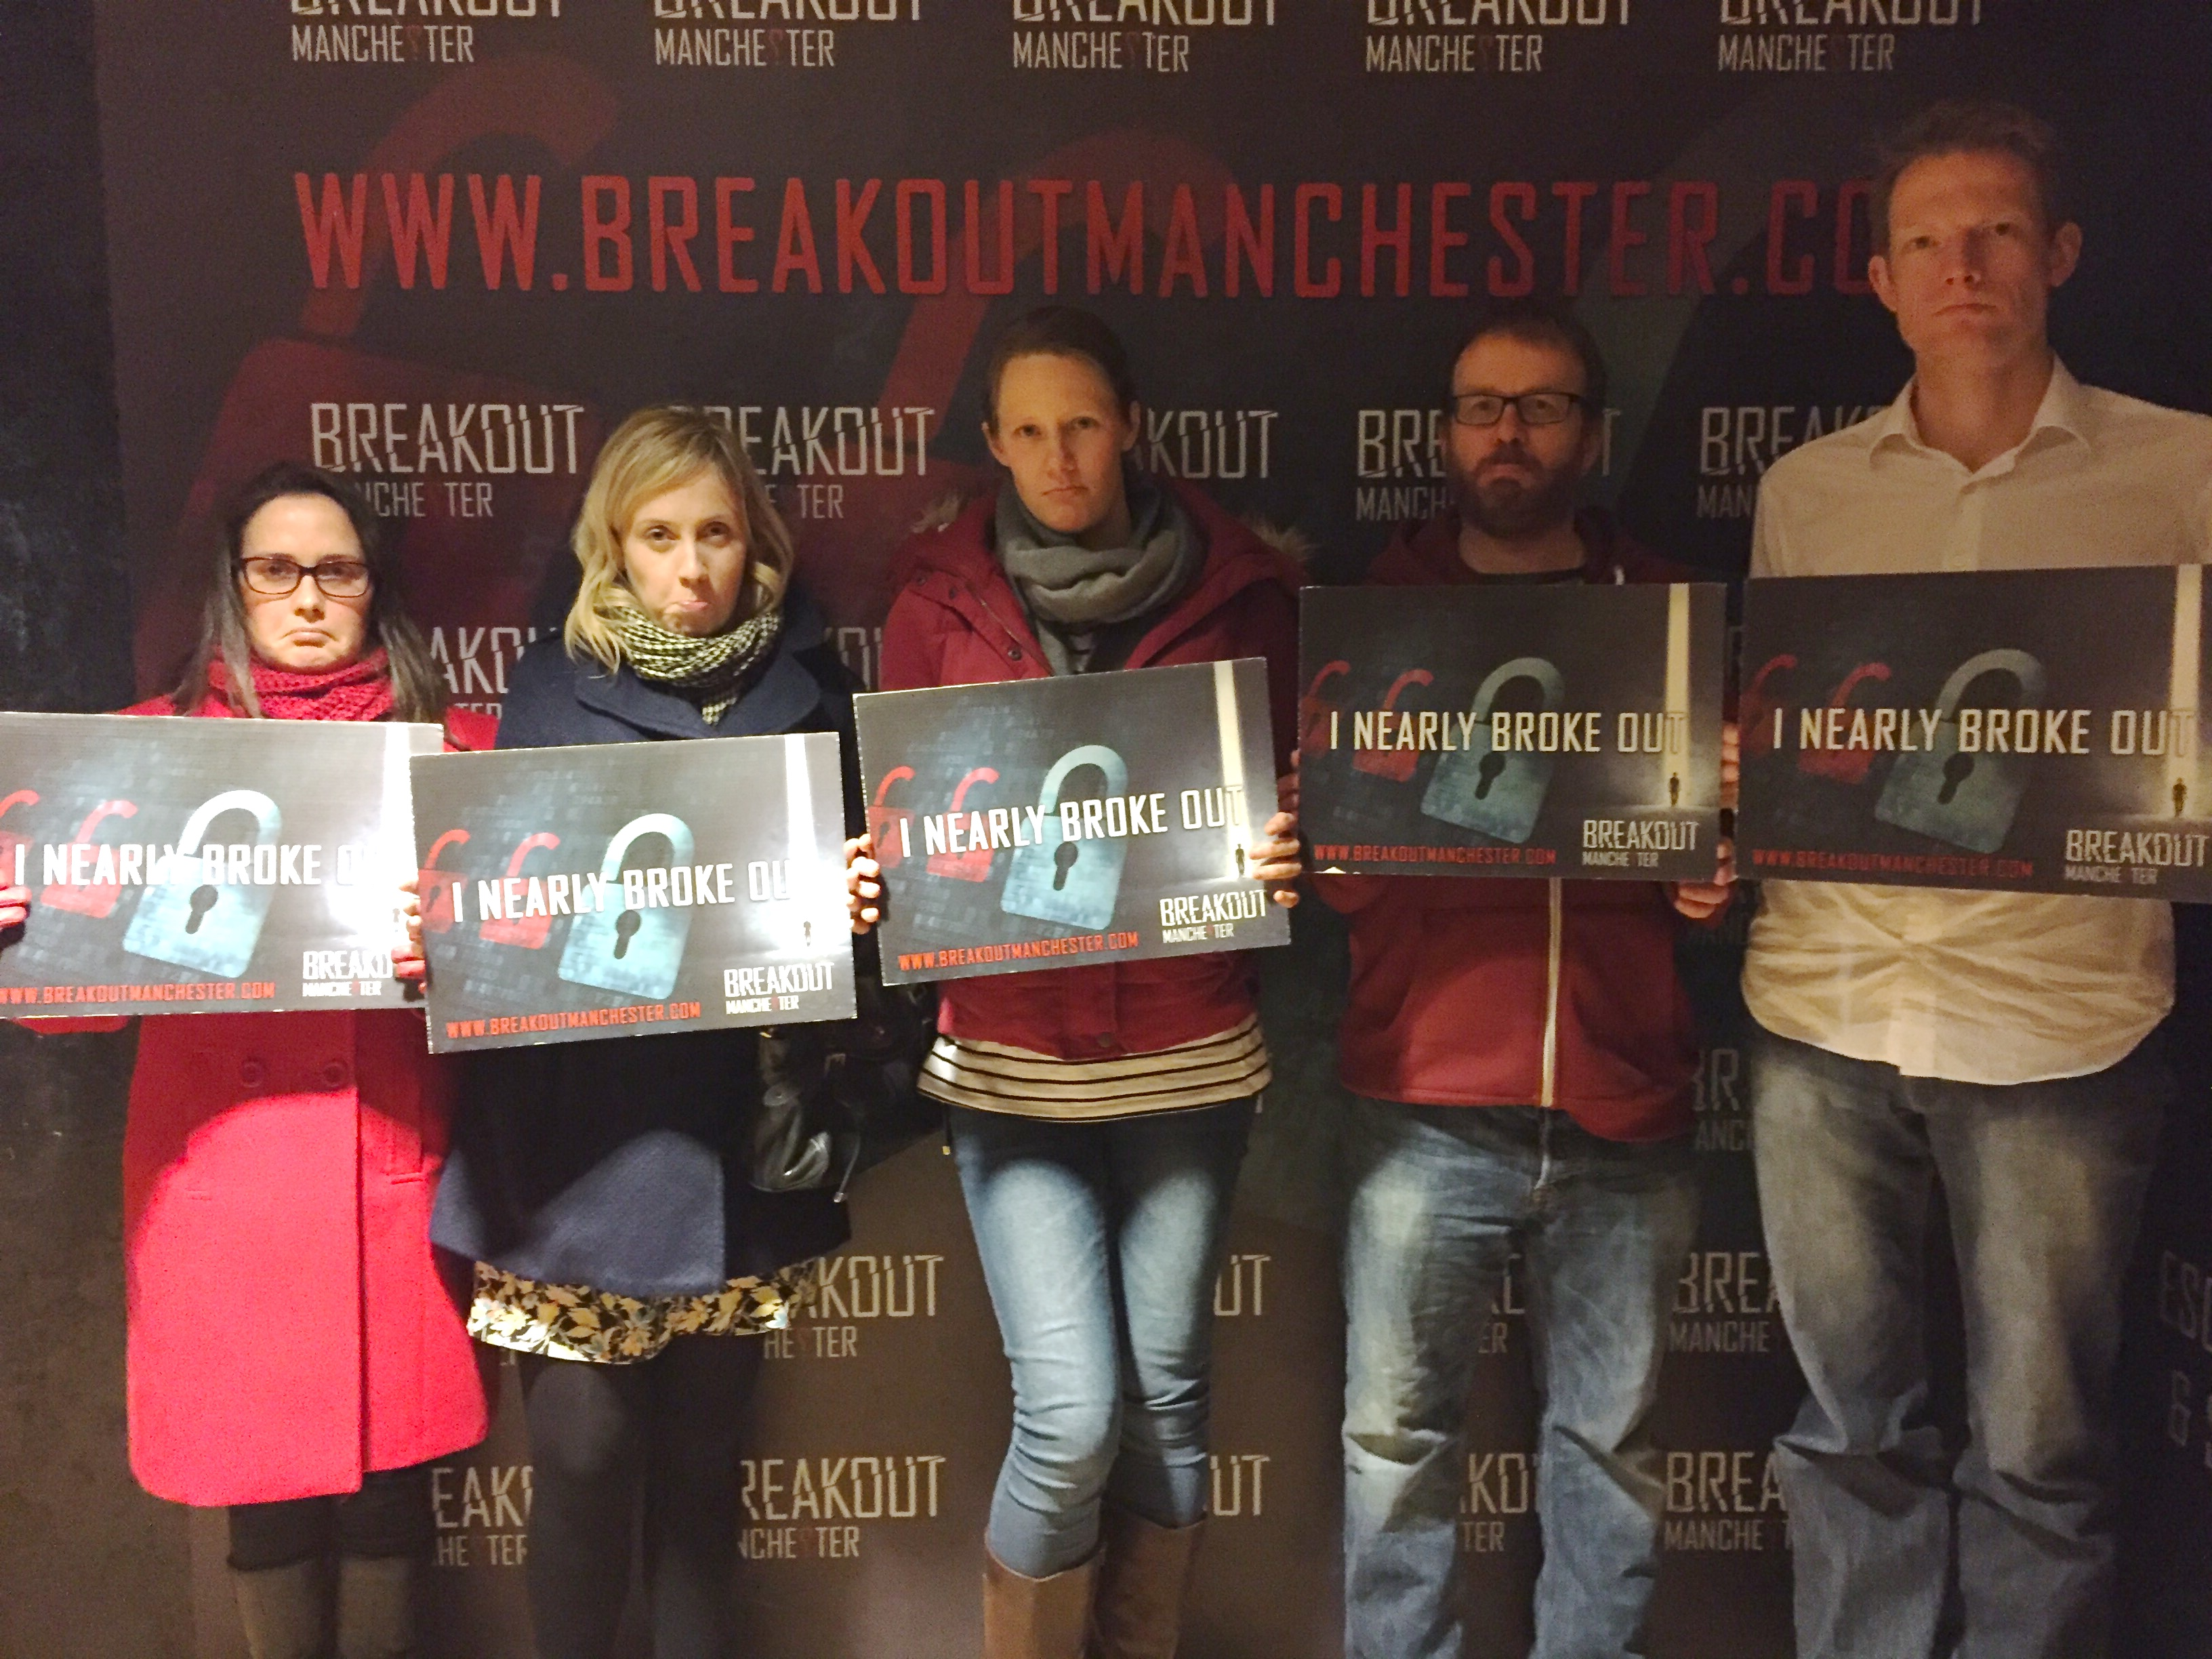 We nearly broke out! Breakout Manchester: Escape Room